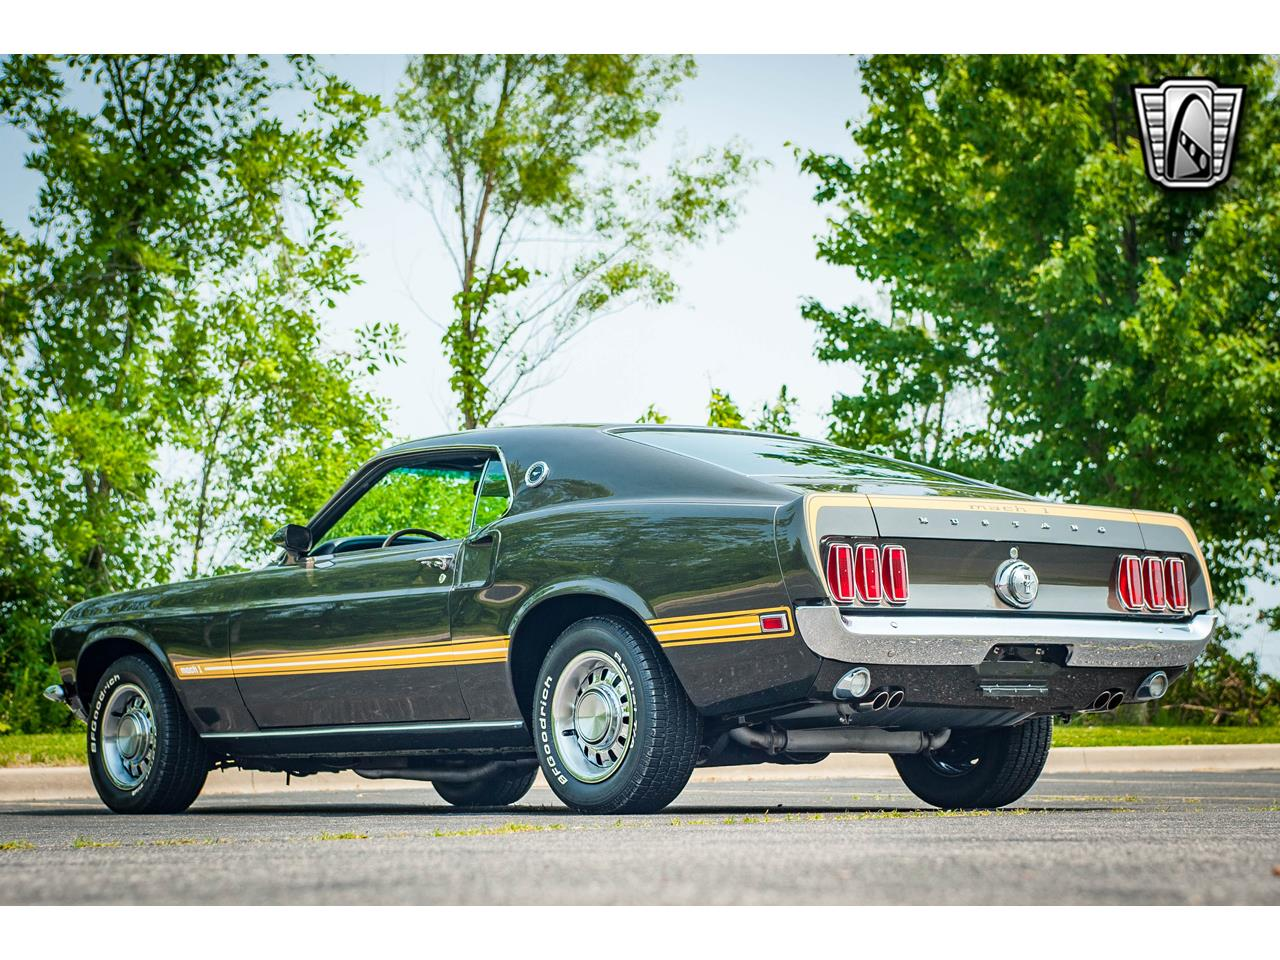 Large Picture of Classic '69 Ford Mustang located in O'Fallon Illinois - $97,500.00 Offered by Gateway Classic Cars - St. Louis - QBA2